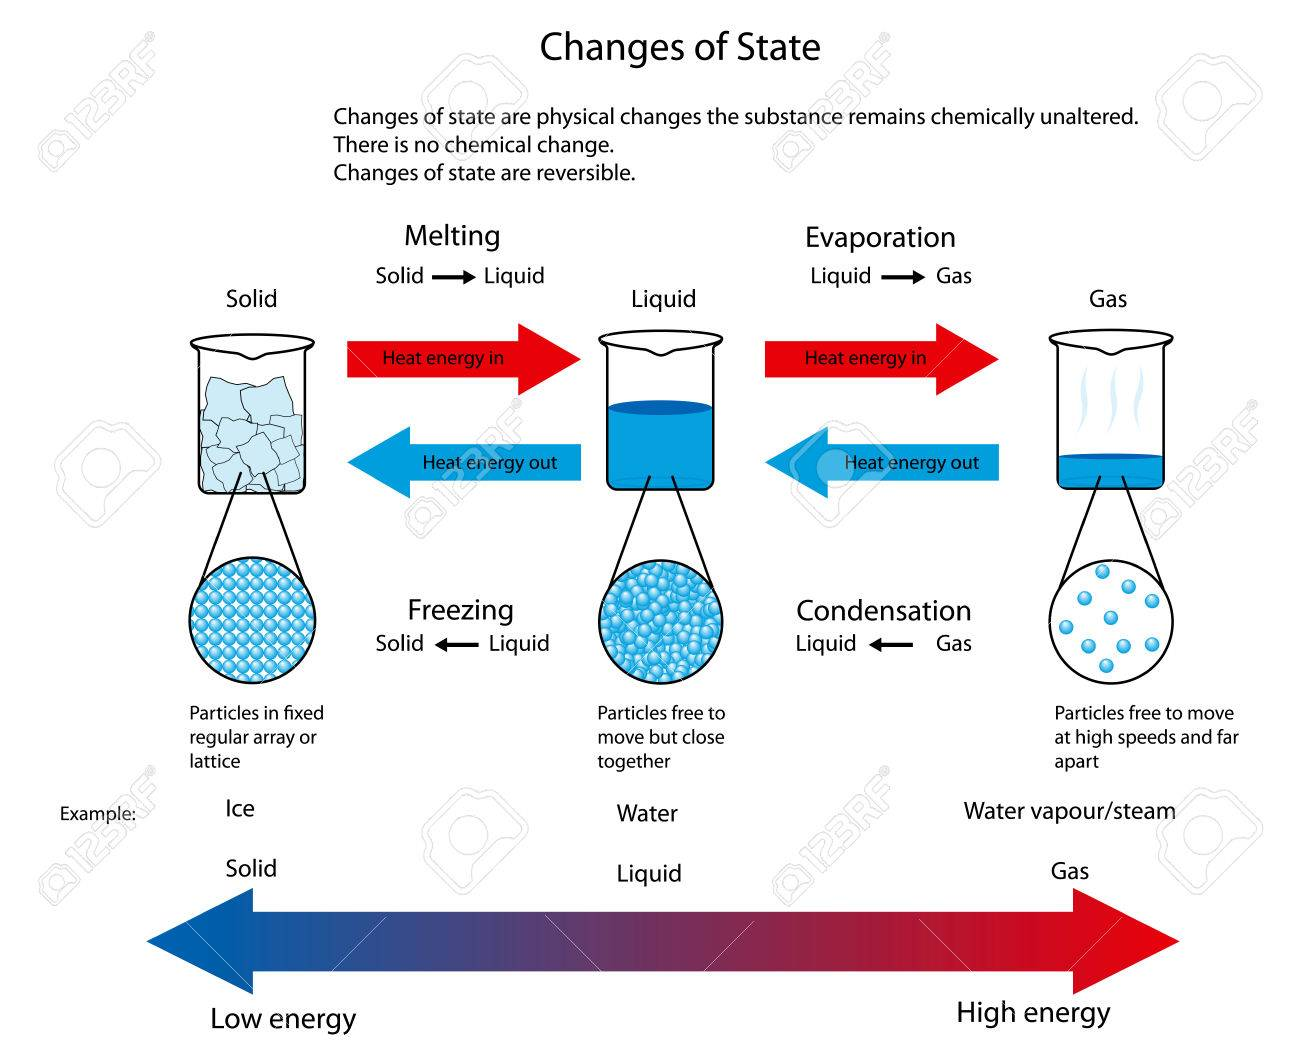 hight resolution of diagram illustrating the physical changes of state from solid to liquid to gas showing particle arrangement